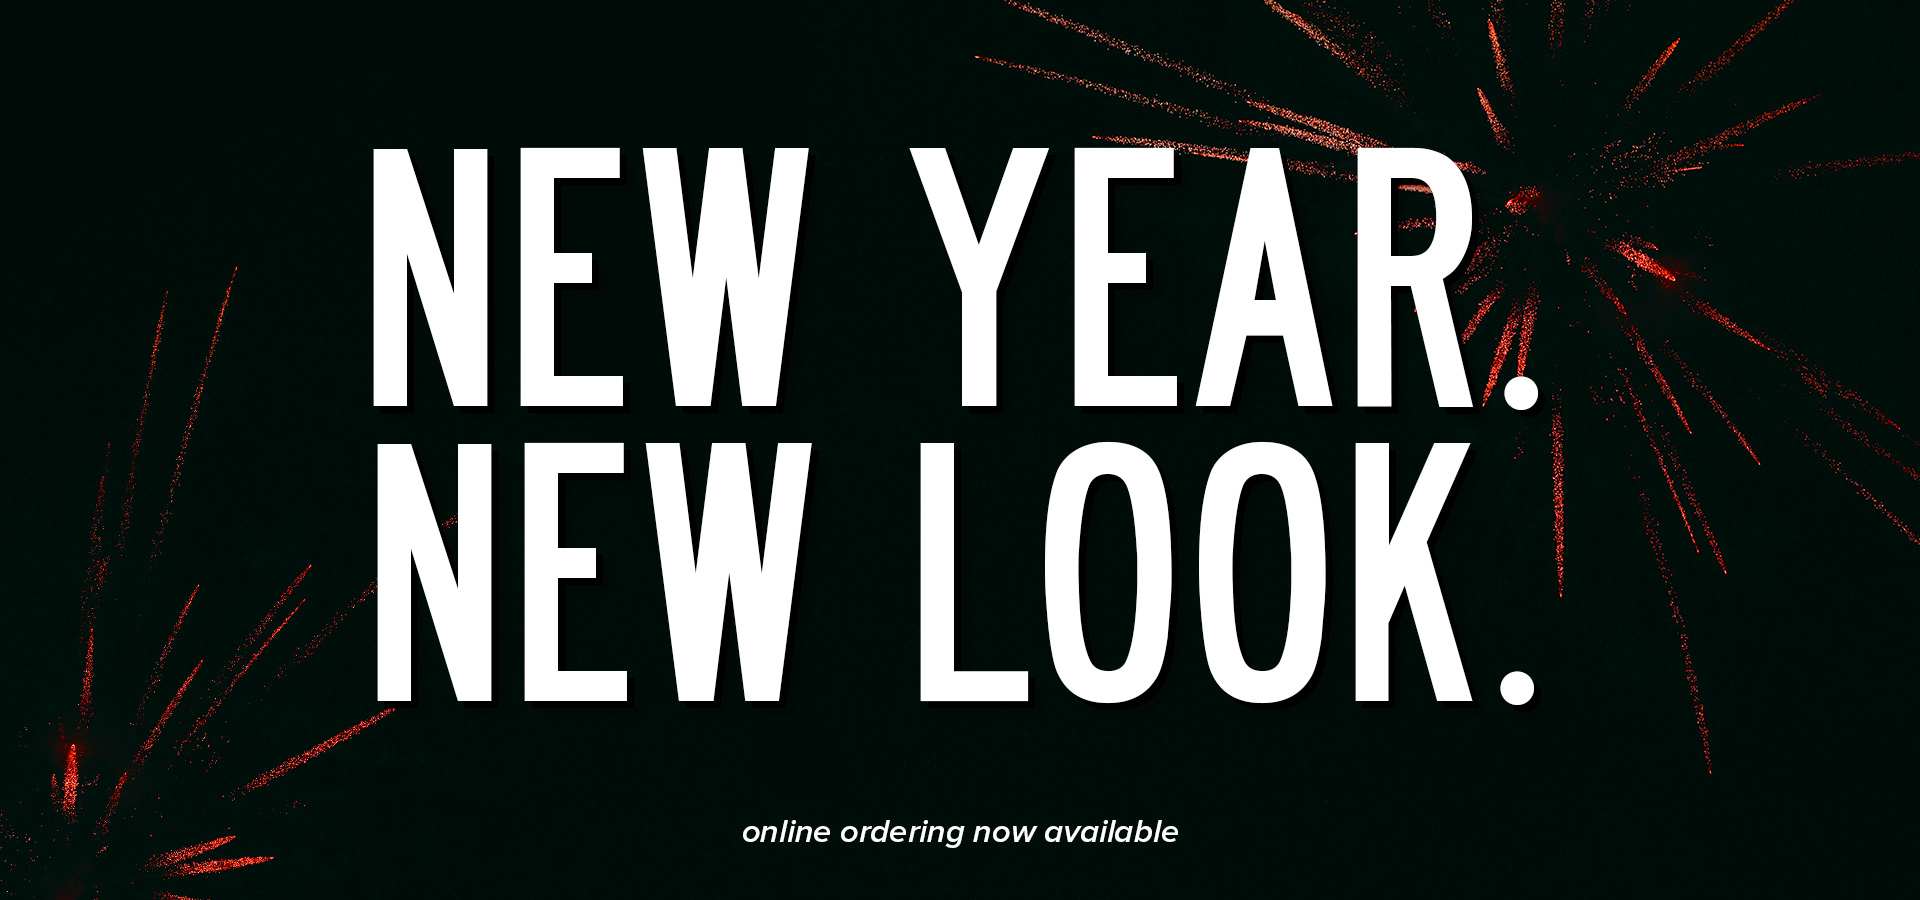 New Year, New Look. Shop online with The Worthy Dog